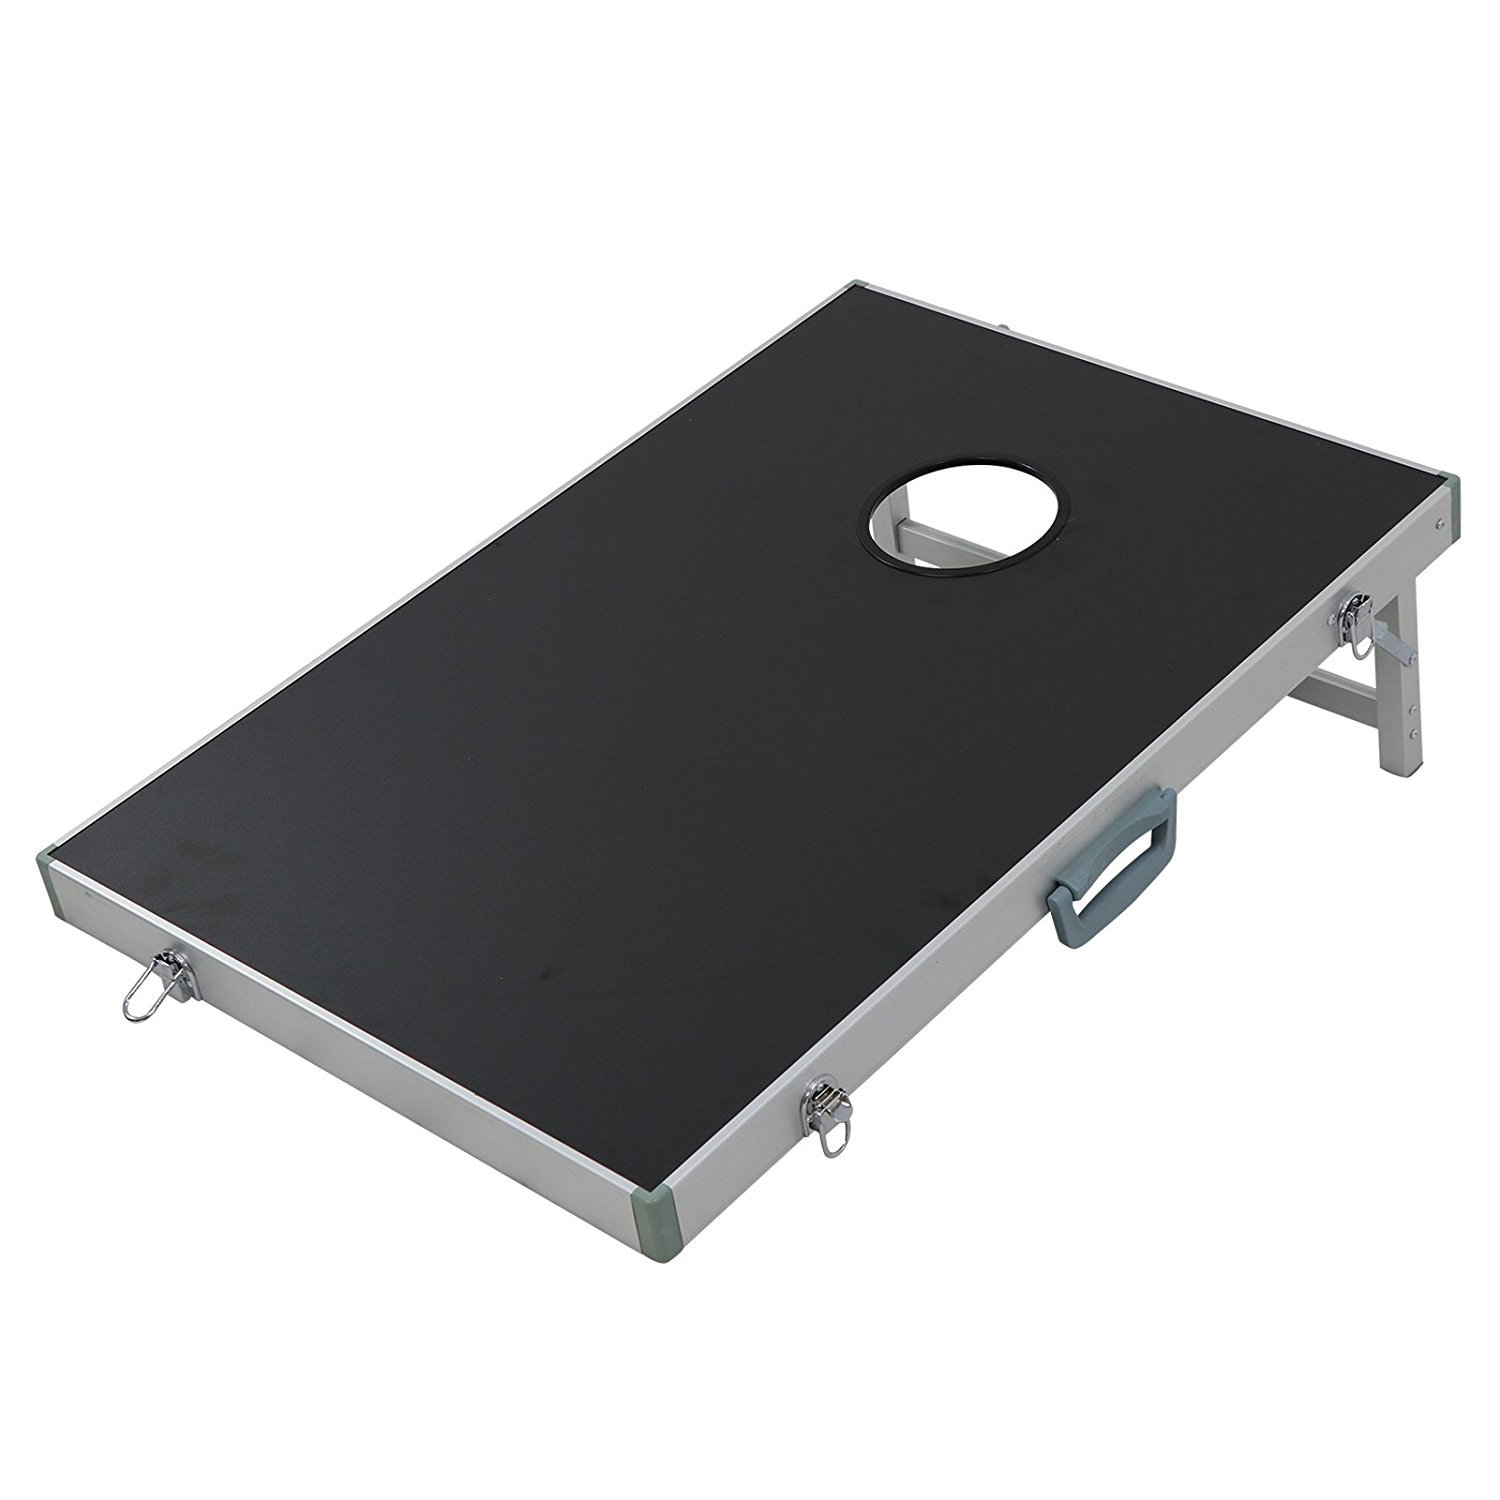 ZENY 3' x 2' Cornhole Bean Bag Toss Game Set with Carrying Case Aluminum Lightweight Corn Hole Board by ZENY (Image #5)